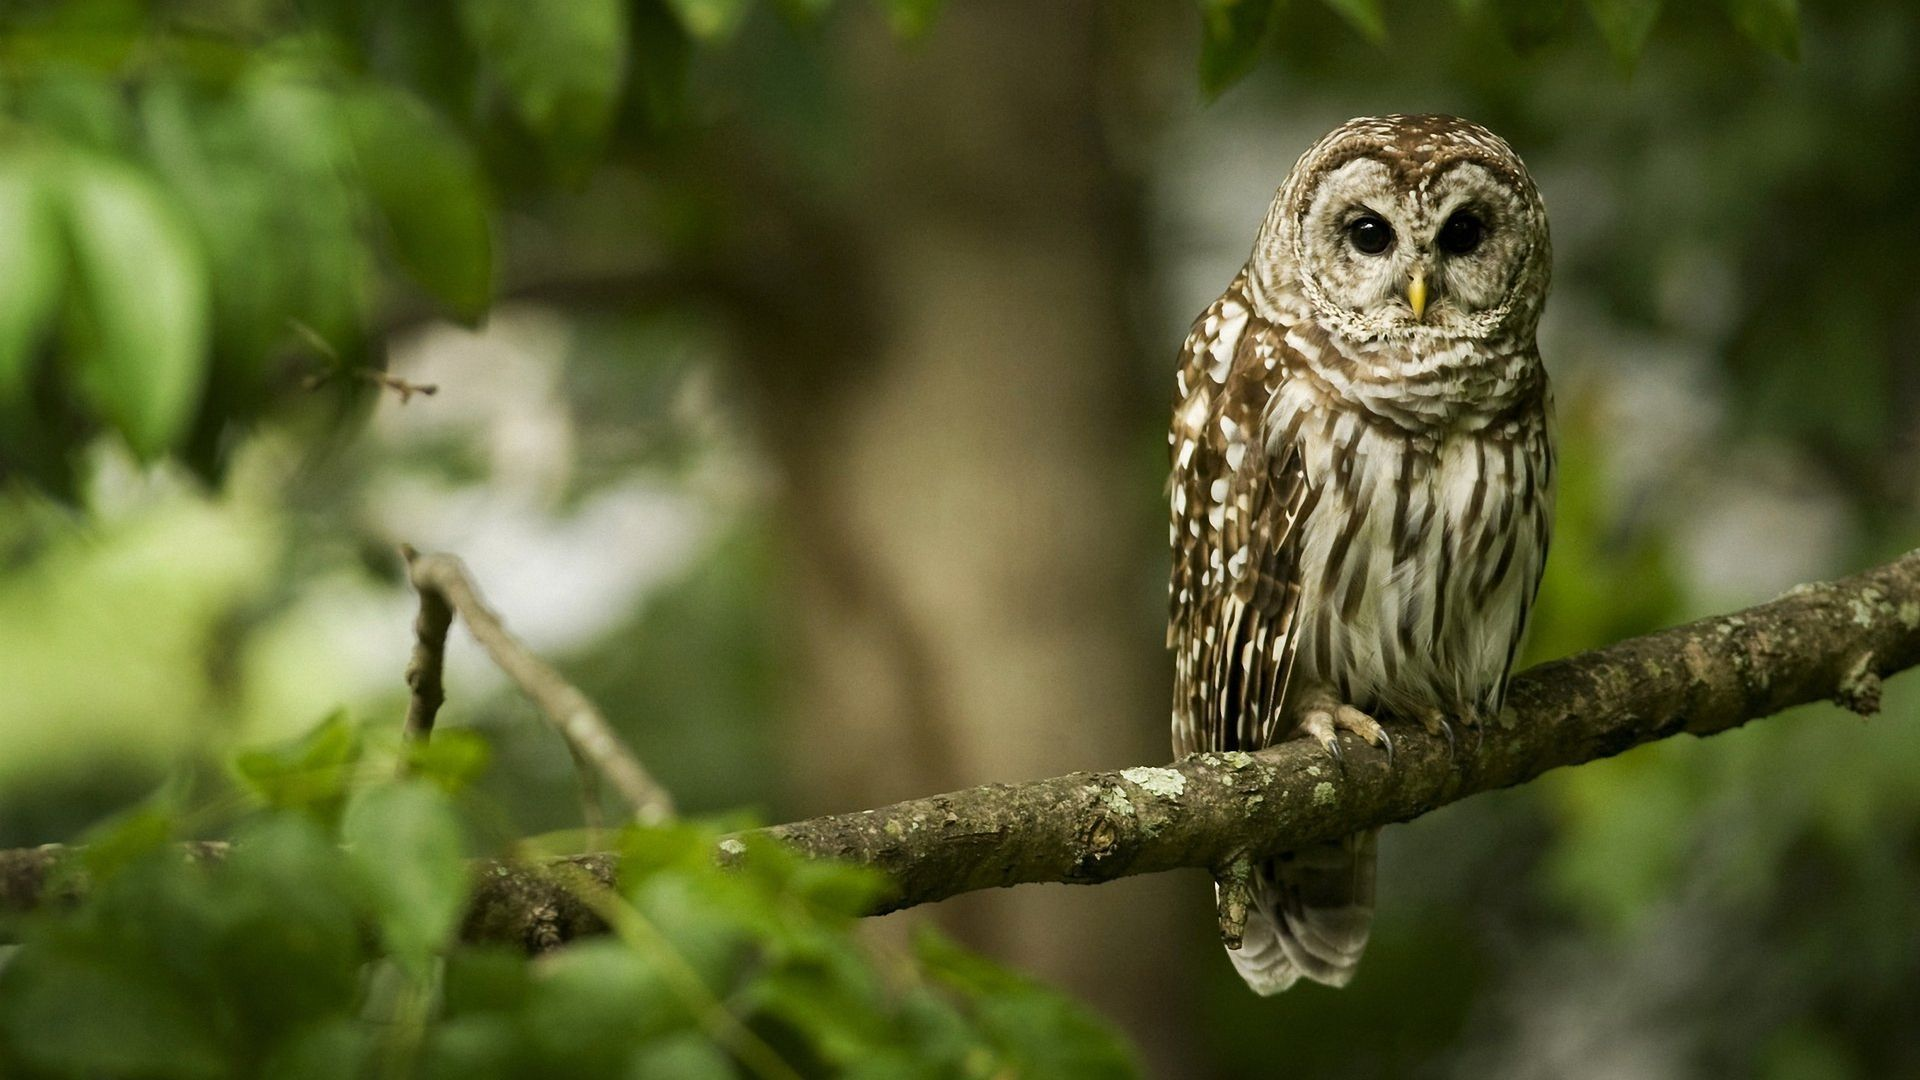 Pictures Of Owls On The Branch